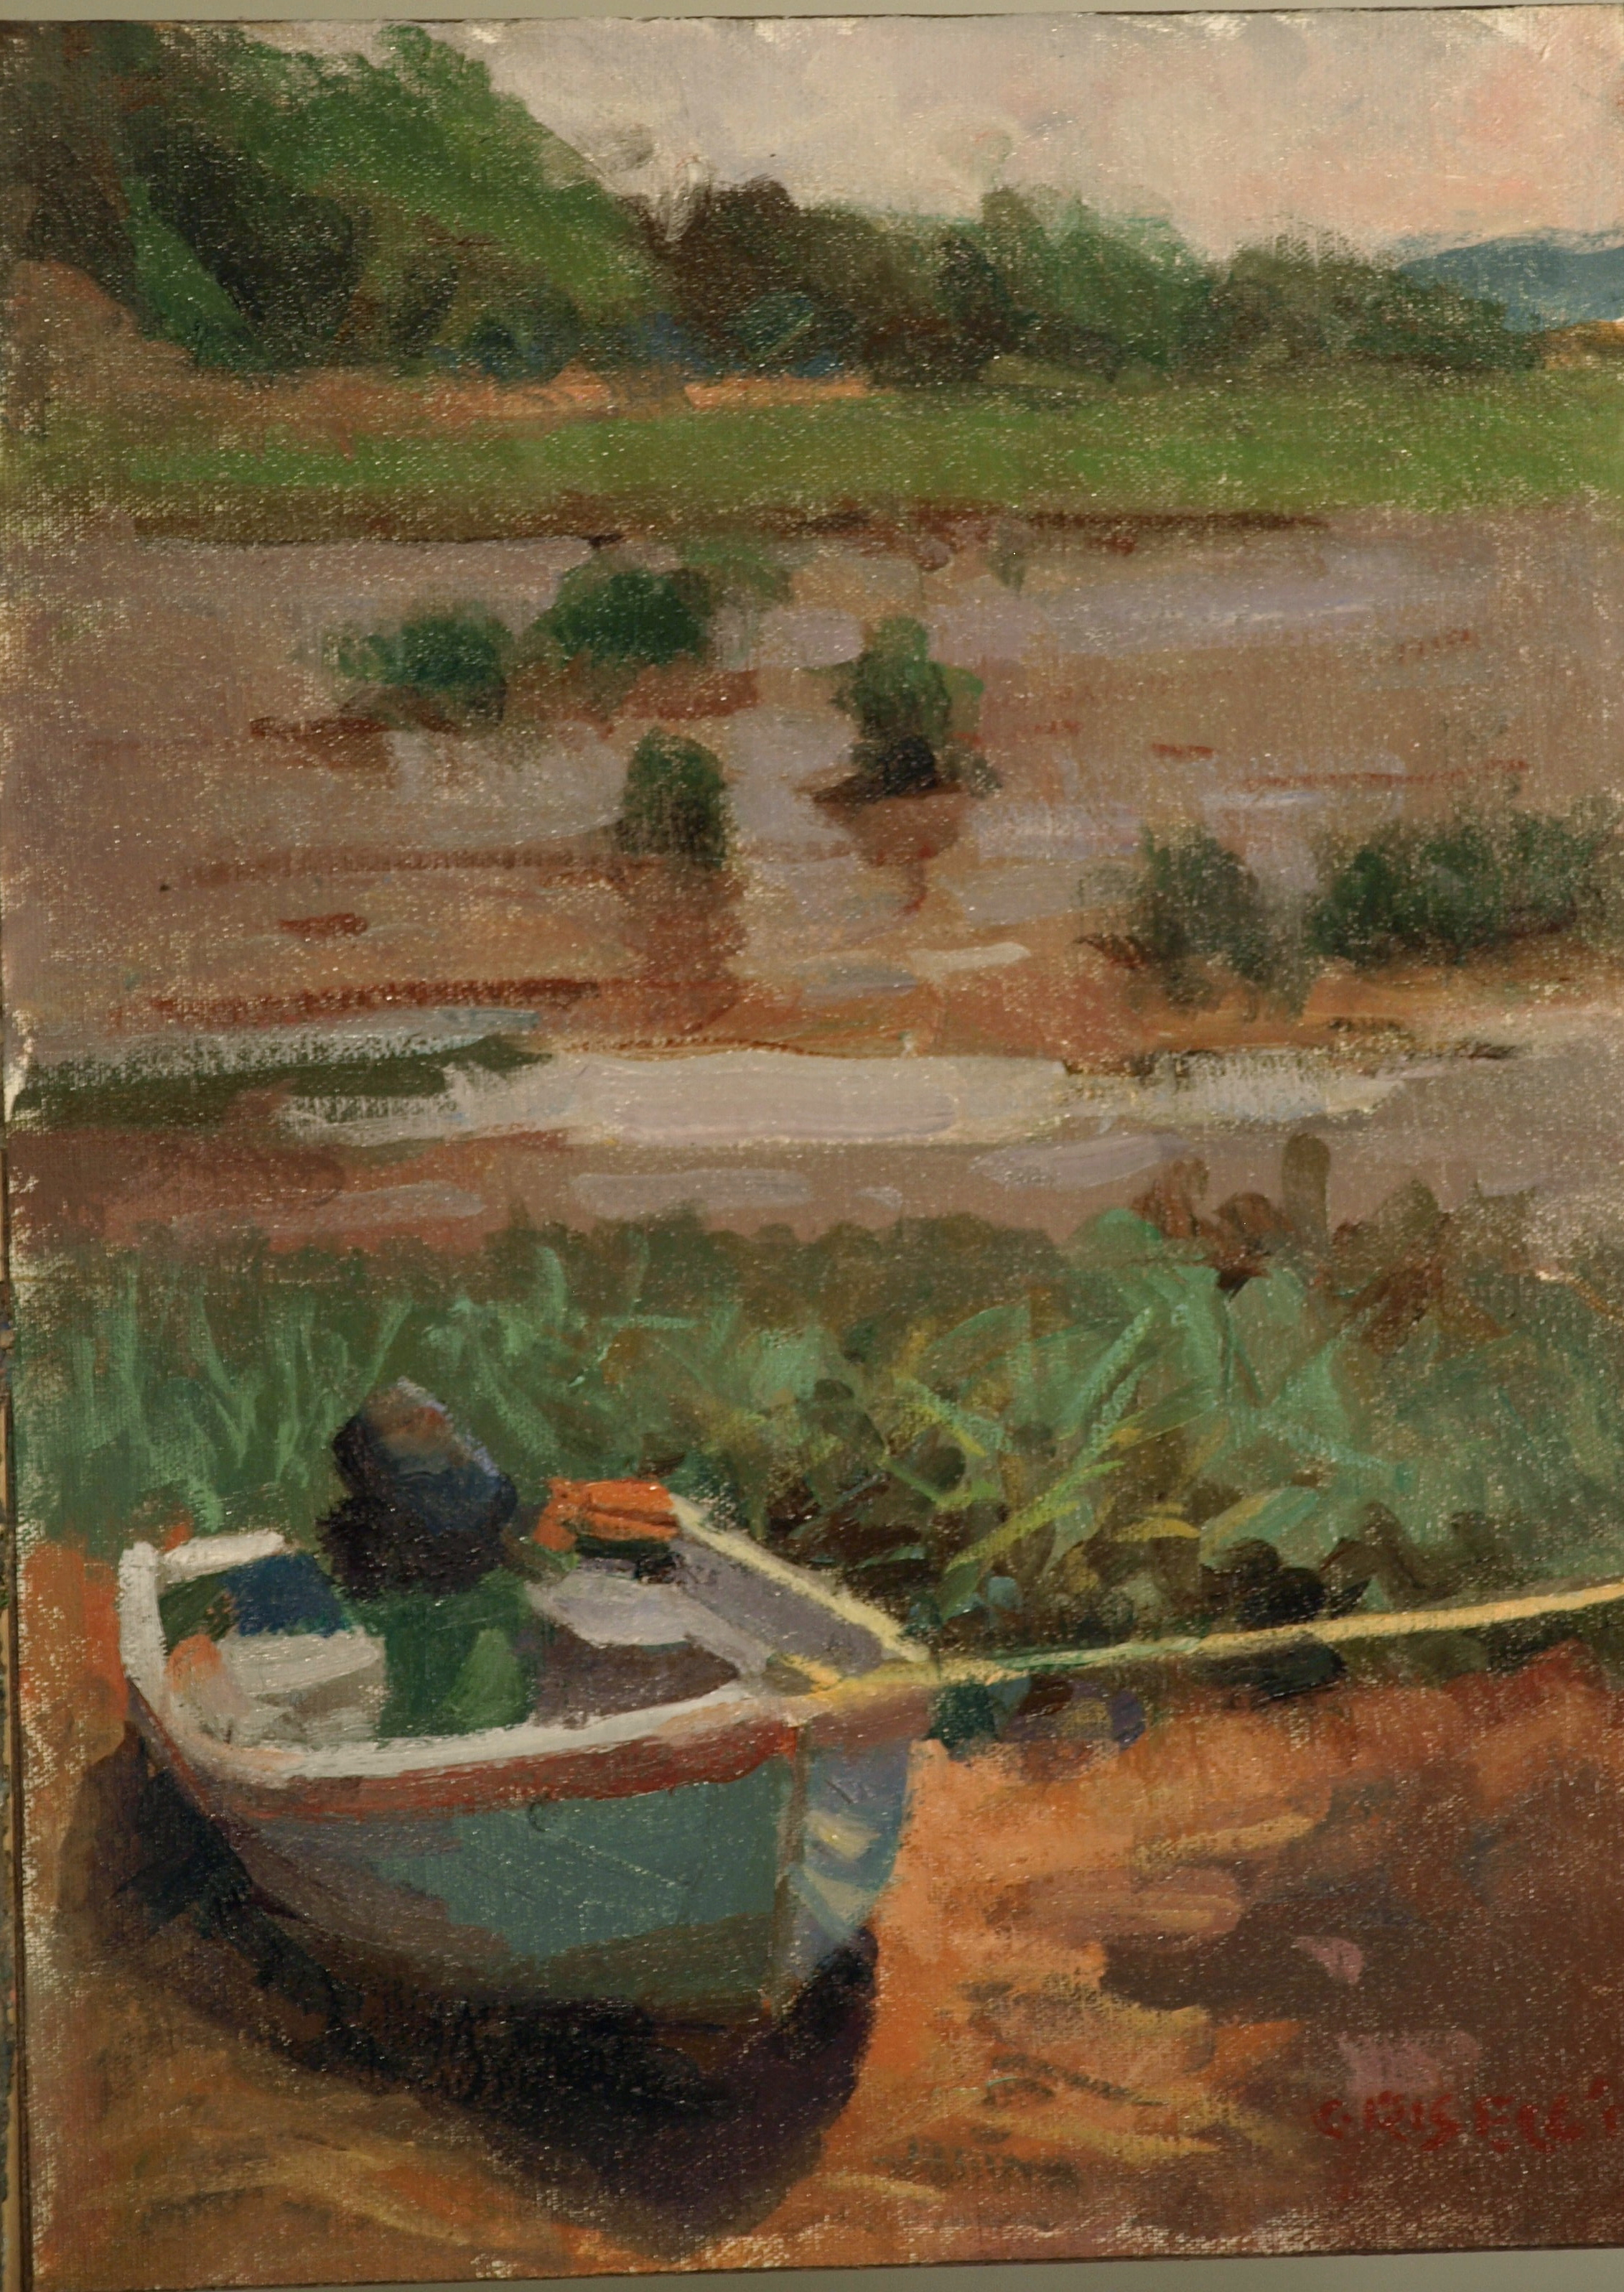 Rowboat, Oil on Canvas on Panel, 16 x 12 Inches, by Susan Grisell, $275